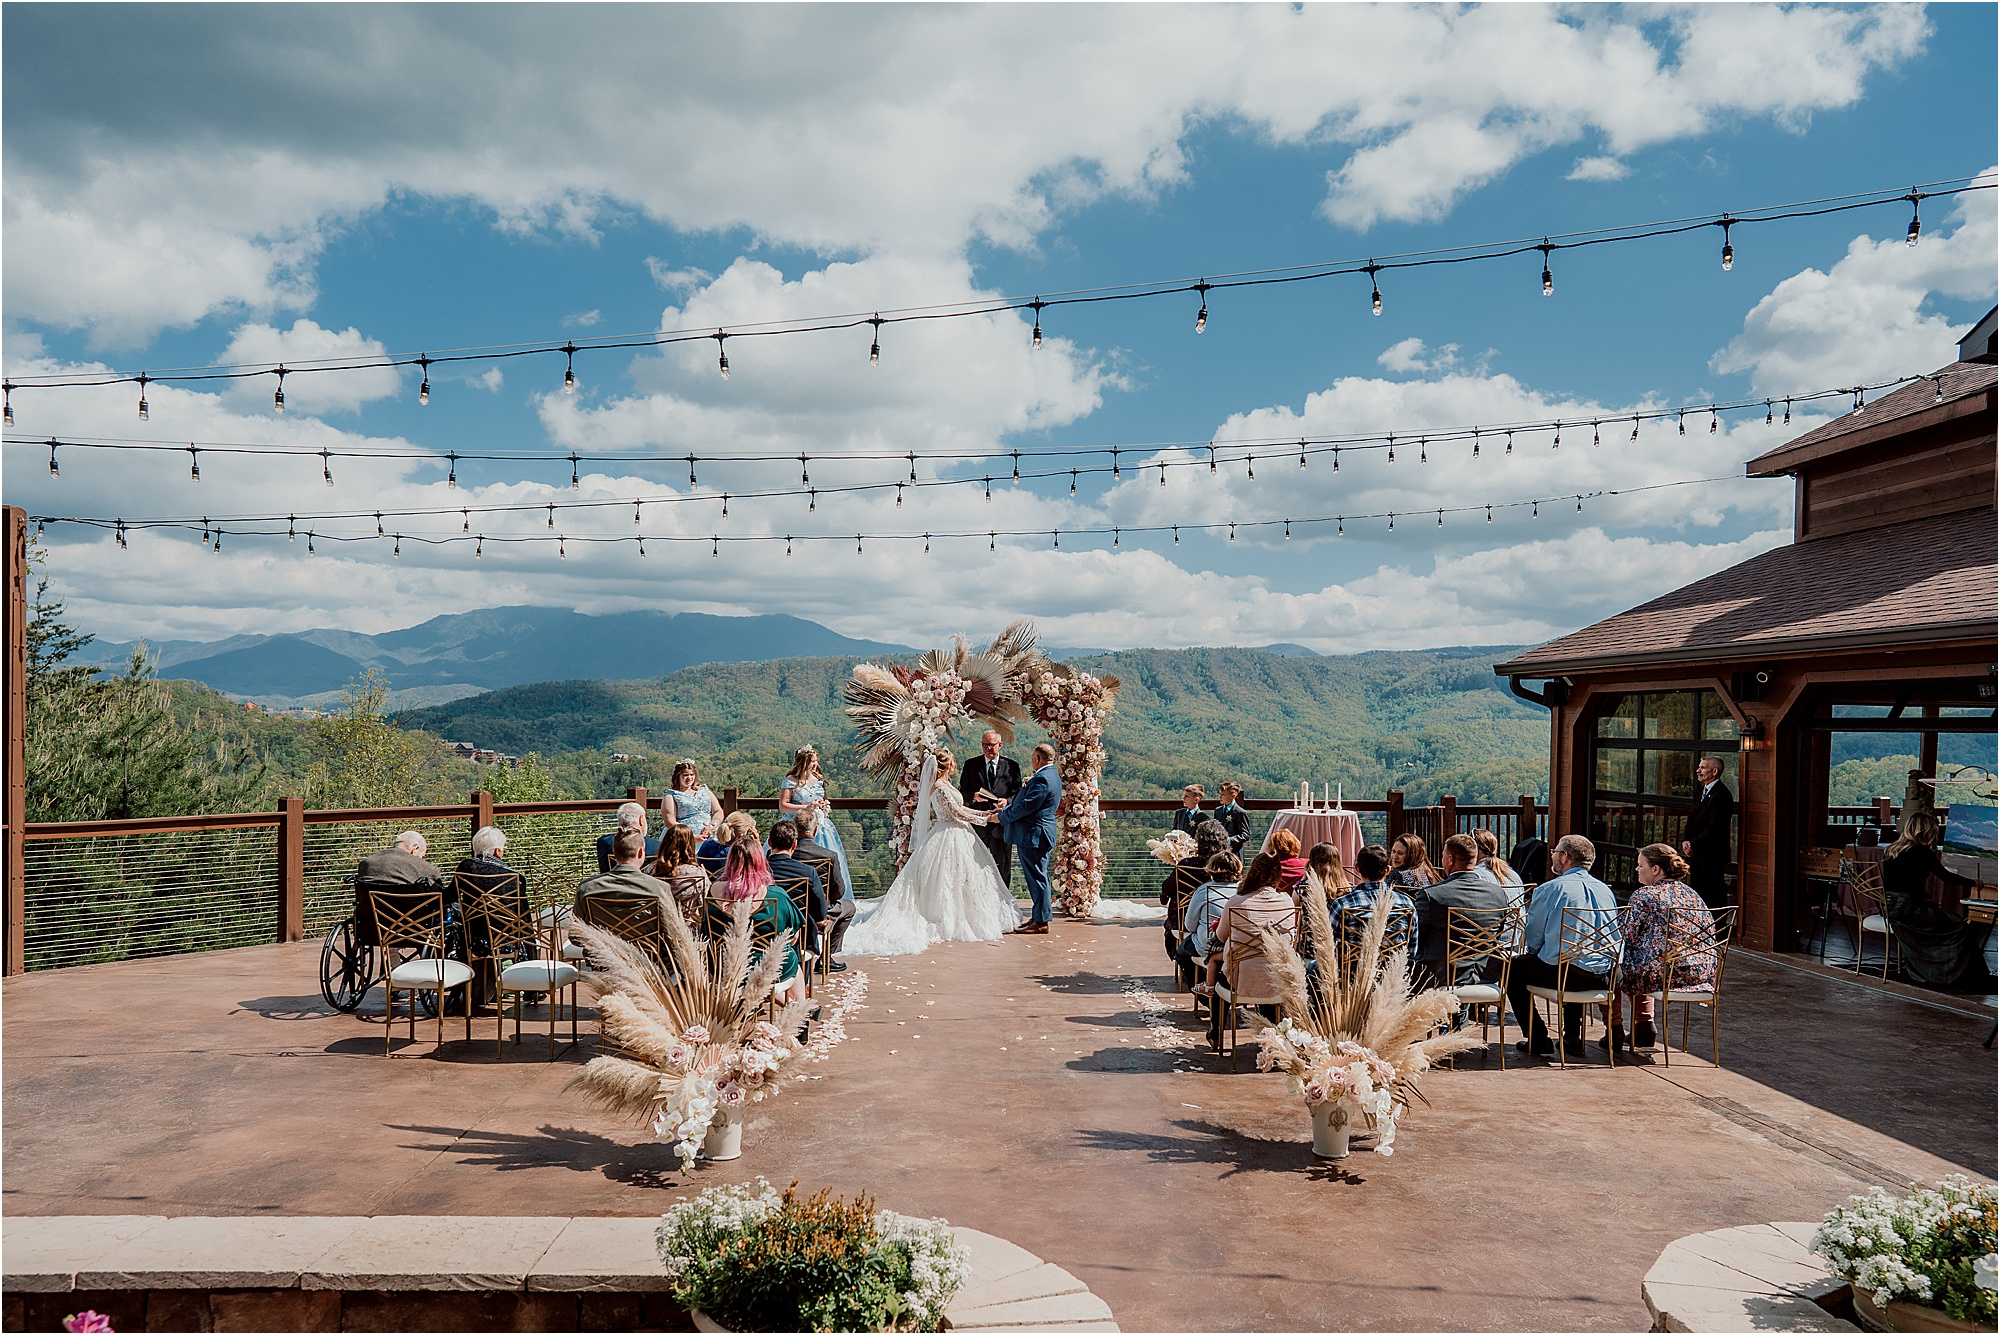 Fairytale Wedding with Magical Floral Arbor overlooking the Smokies